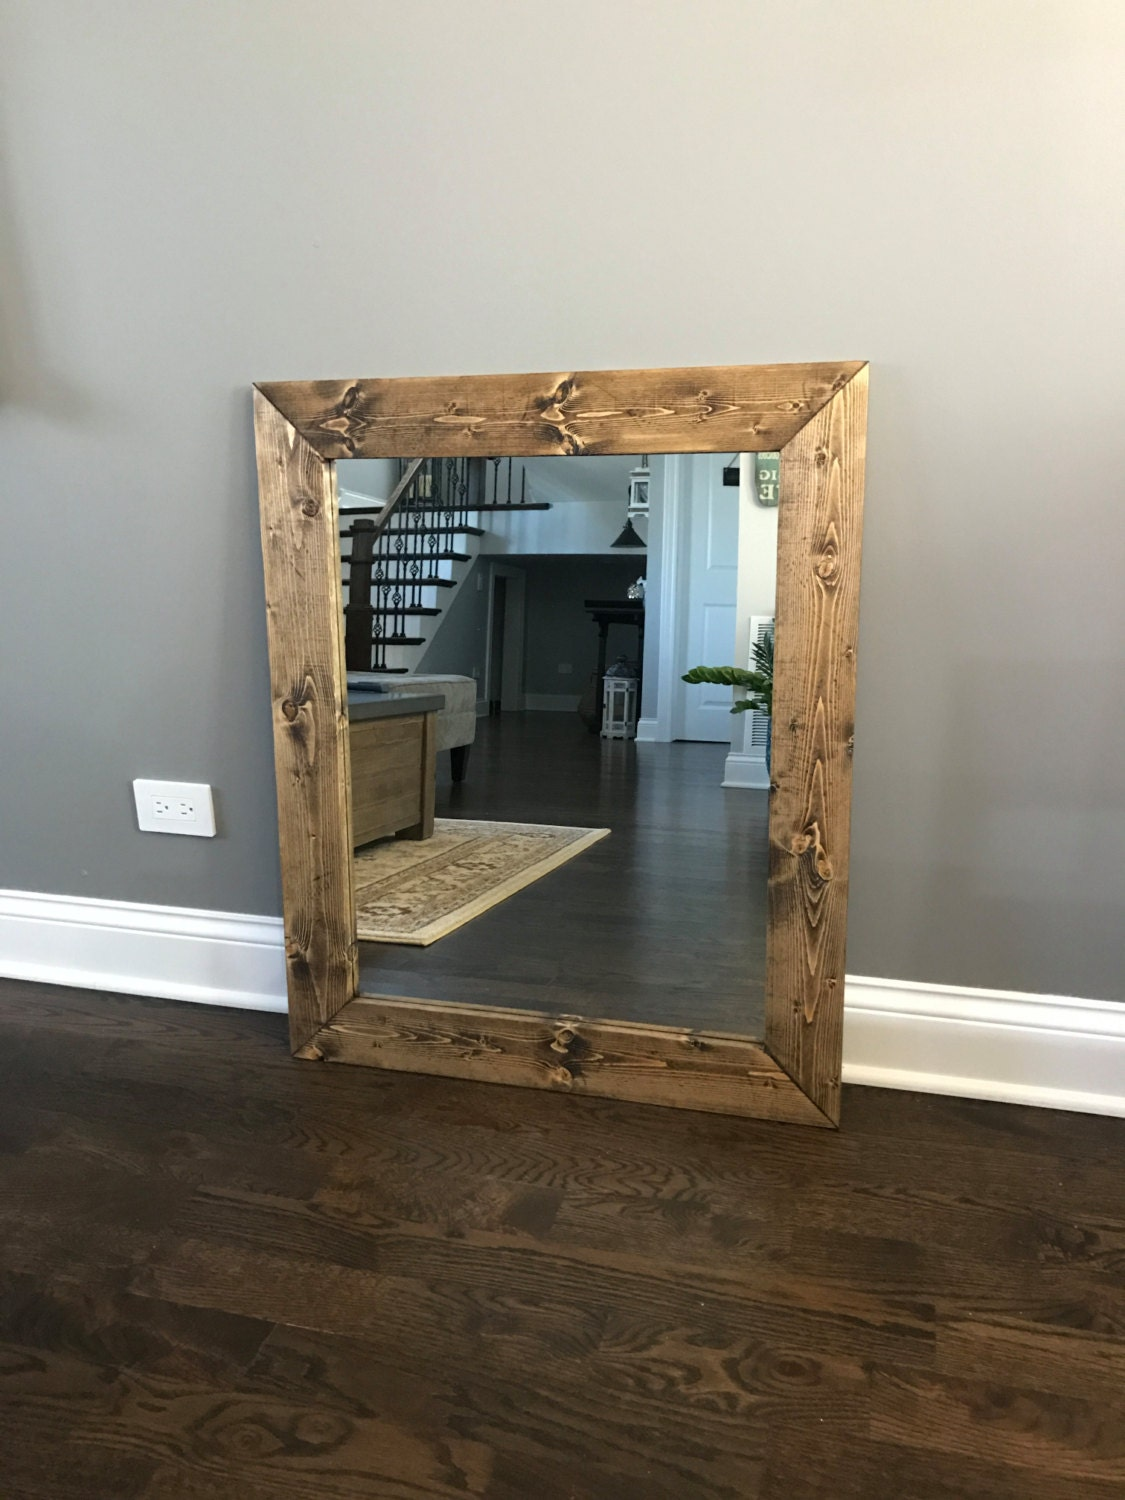 Bathroom mirrors wood frame - Mirror Wood Frame Mirror Rustic Wood Mirror Bathroom Mirror Wall Mirror Vanity Mirror Small Mirror Large Mirror